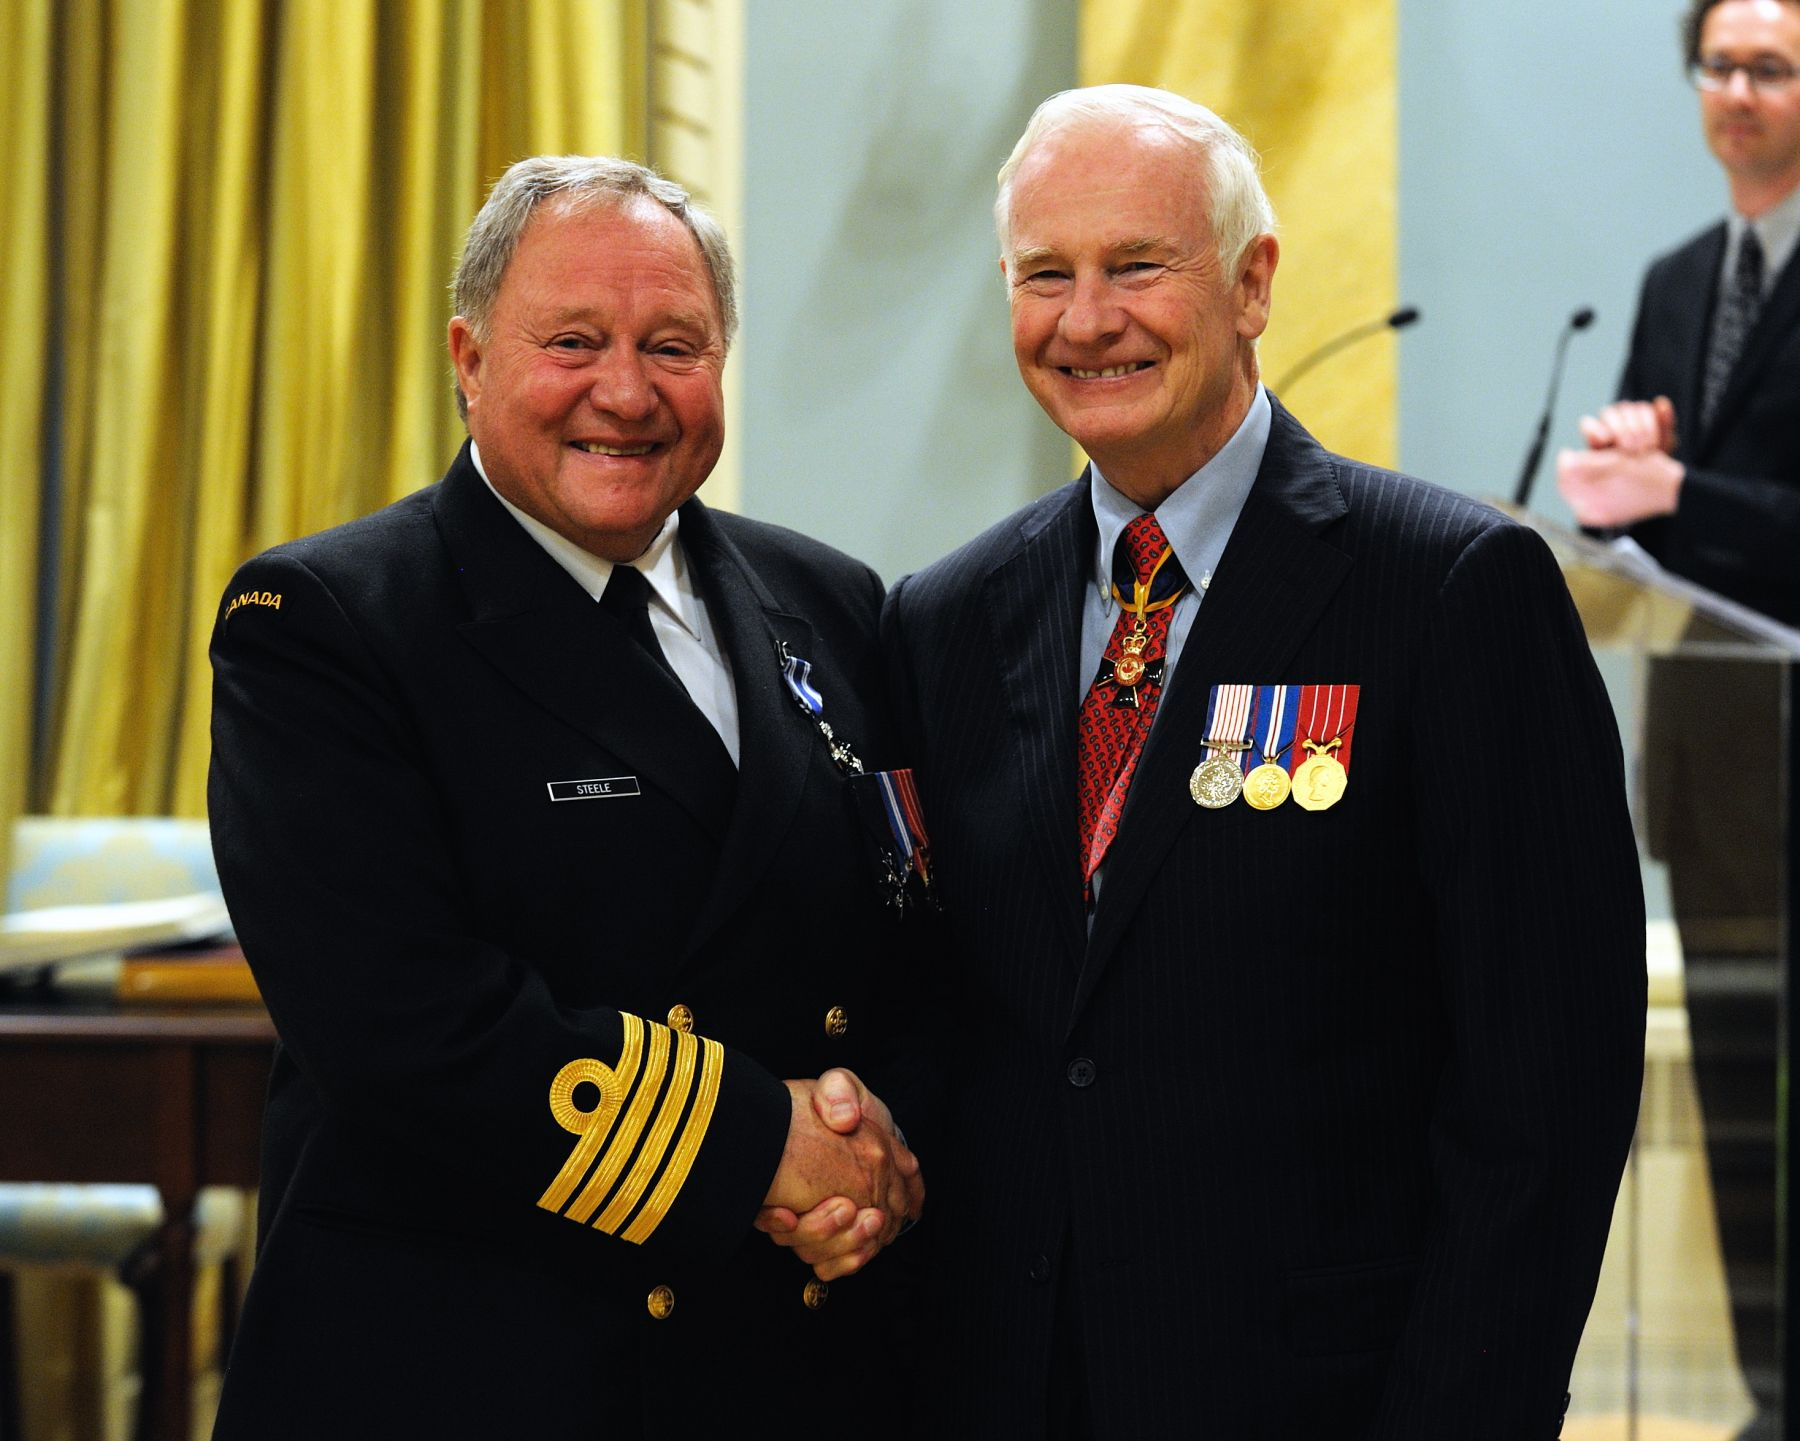 Honorary Captain (N) Cedric Steel, M.S.M., C.D., received the Meritorious Service Medal (Military Division) from His Excellency. In the 13 years since 1997, Honorary Captain (N) Steele's unflagging service to Canadian Forces Base Esquimalt, Maritime Forces Pacific and to the Canadian Forces in general, has inspired and connected the Navy with prominent Canadians and various business groups, as well as the local community. Through Captain (N) Steele's extraordinary energy, vision and tireless efforts, the Esquimalt-based Navy has become linked to the identity of Greater Victoria, as further demonstrated by his commitment to create the Naval Centennial Homecoming statue on the Victoria waterfront.